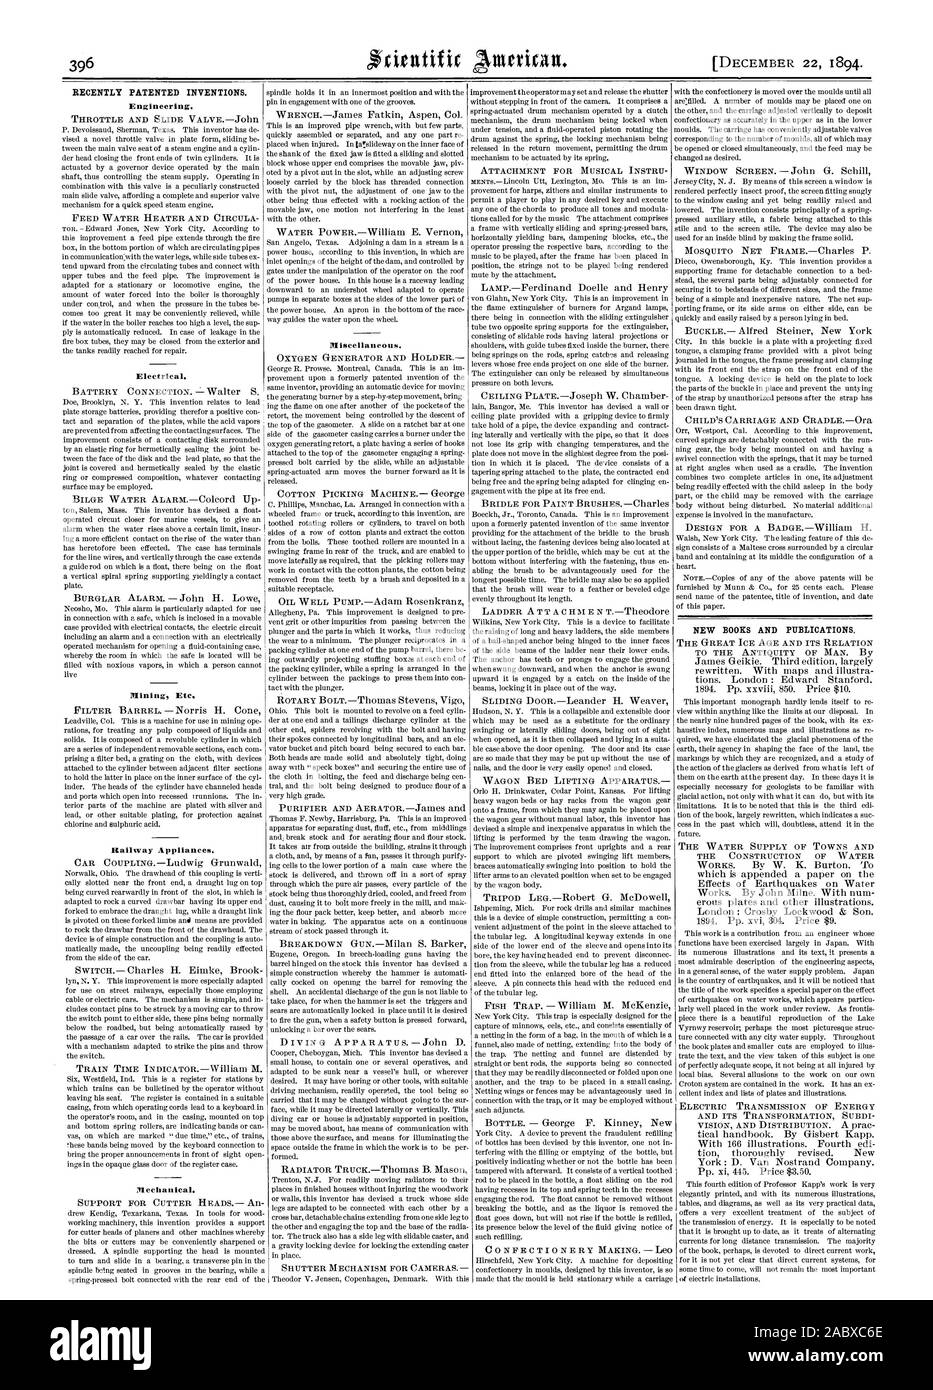 RECENTLY PATENTED INVENTIONS. Engineering. THROTTLE AND SLIDE VALVEJohn FEED WATER HEATER AND CIRCULA Electrical. Mining Etc. Railway Appliances. Mechanical. Miscellaneous. NEW BOOKS AND PUBLICATIONS. THE WATER SUPPLY OF TOWNS AND THE CONSTRUCTION OF WATER, scientific american, 1894-12-11 Stock Photo